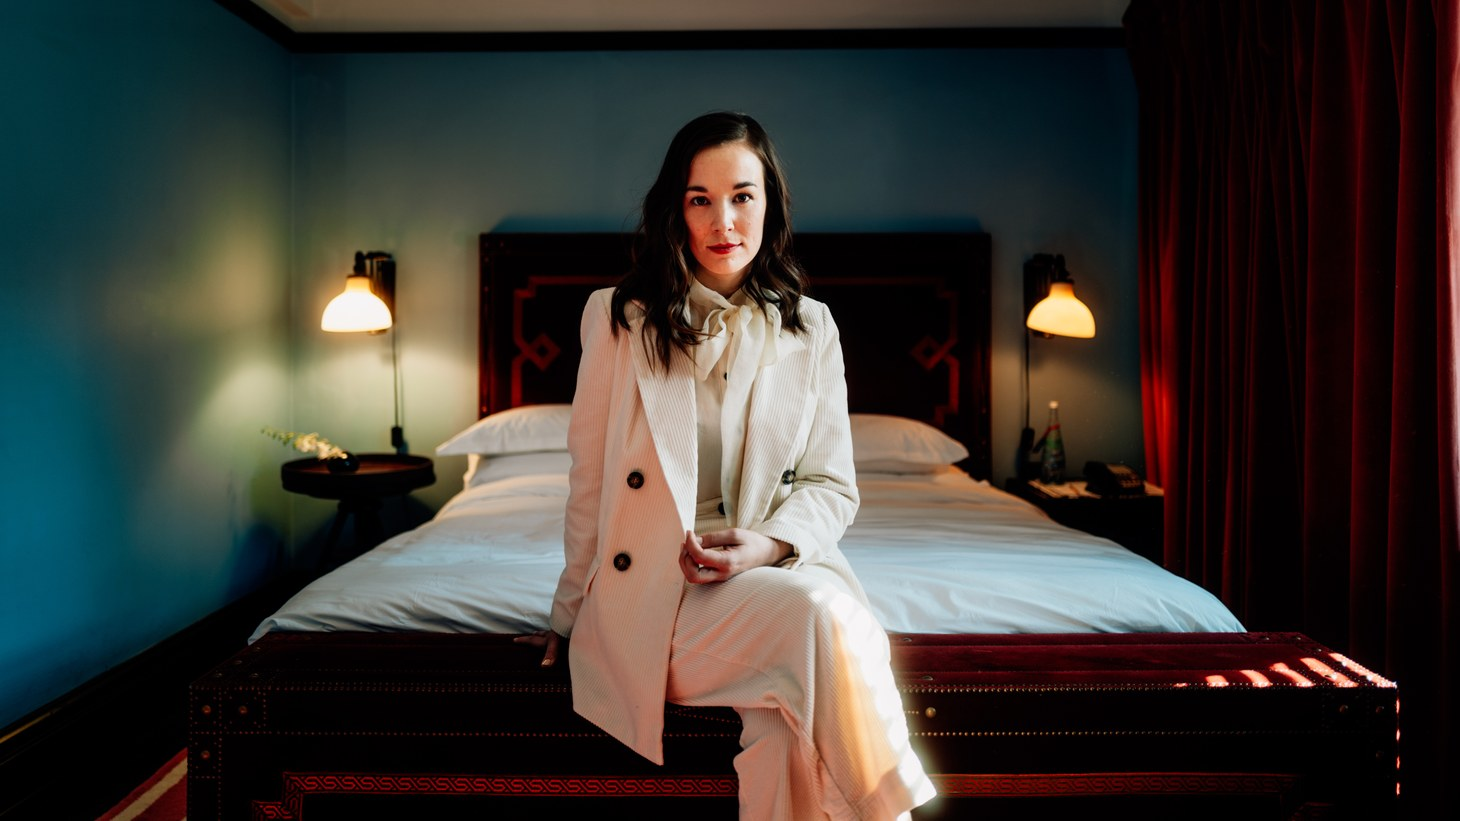 """Margaret Glaspy has a lot going for her. She knows how to turn a phrase, she's nimble on guitar, and to top it off, she's willing to expose her vulnerabilities. We experience all of that on """"Stay With Me."""""""